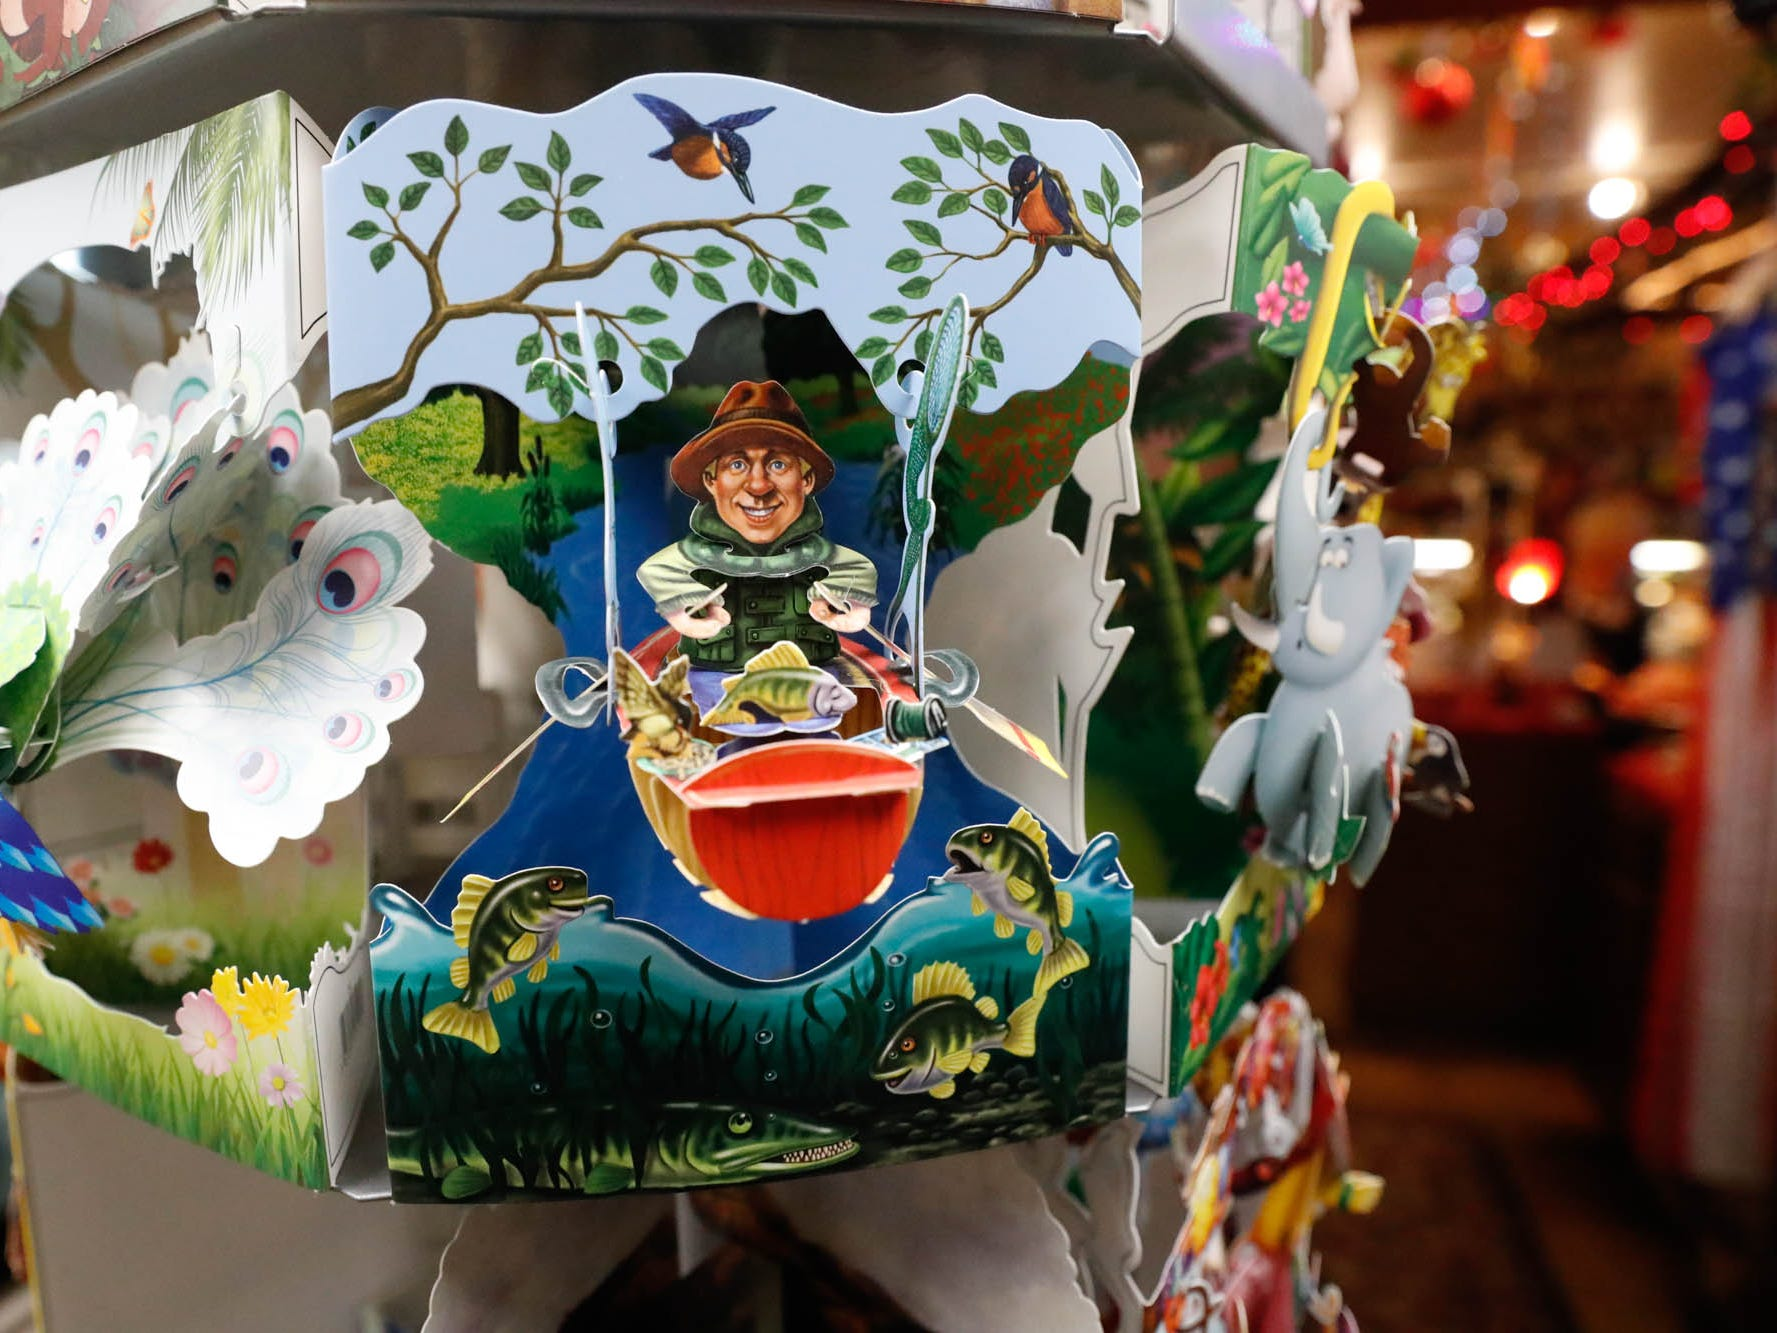 A pop up card is on display at Heidelberg Haus Cafe and Bakery, 7625 Pendleton Pike, Indianapolis Ind., on Saturday, Dec. 8th, 2018. The cafe, bakery, and German grocery is well known for its extensive collection of German Kitsch.